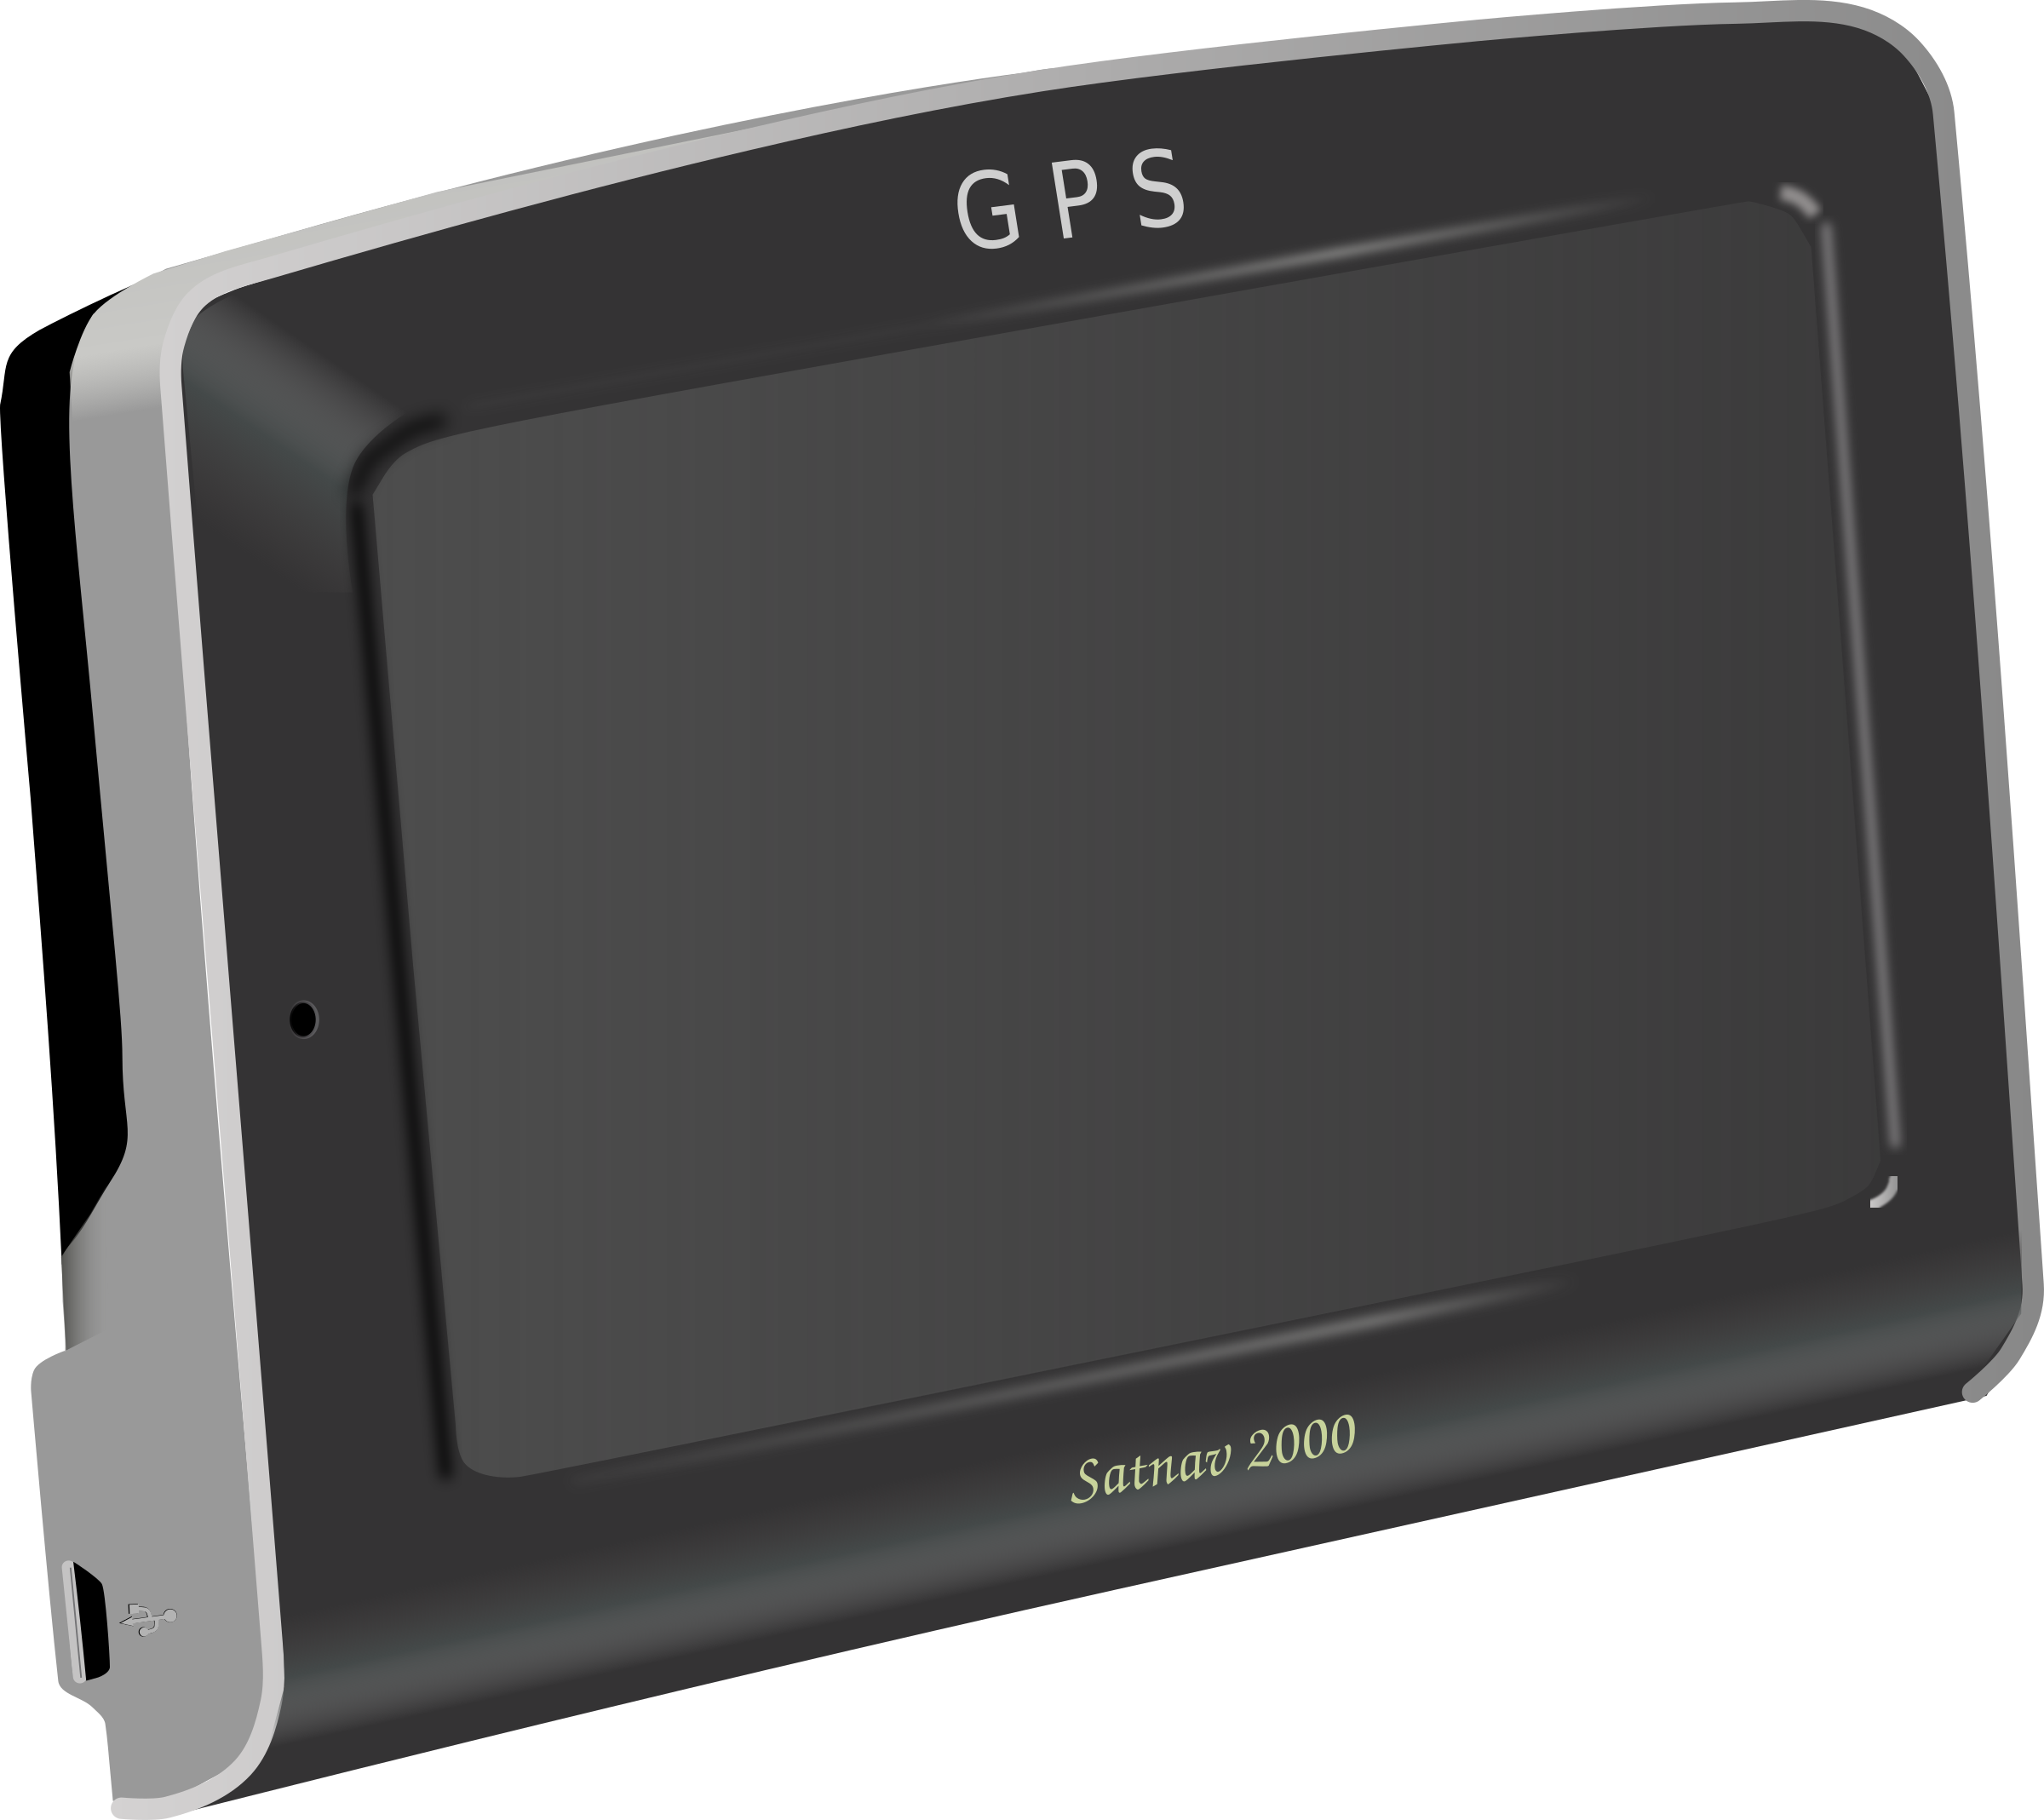 GPS by J_Alves